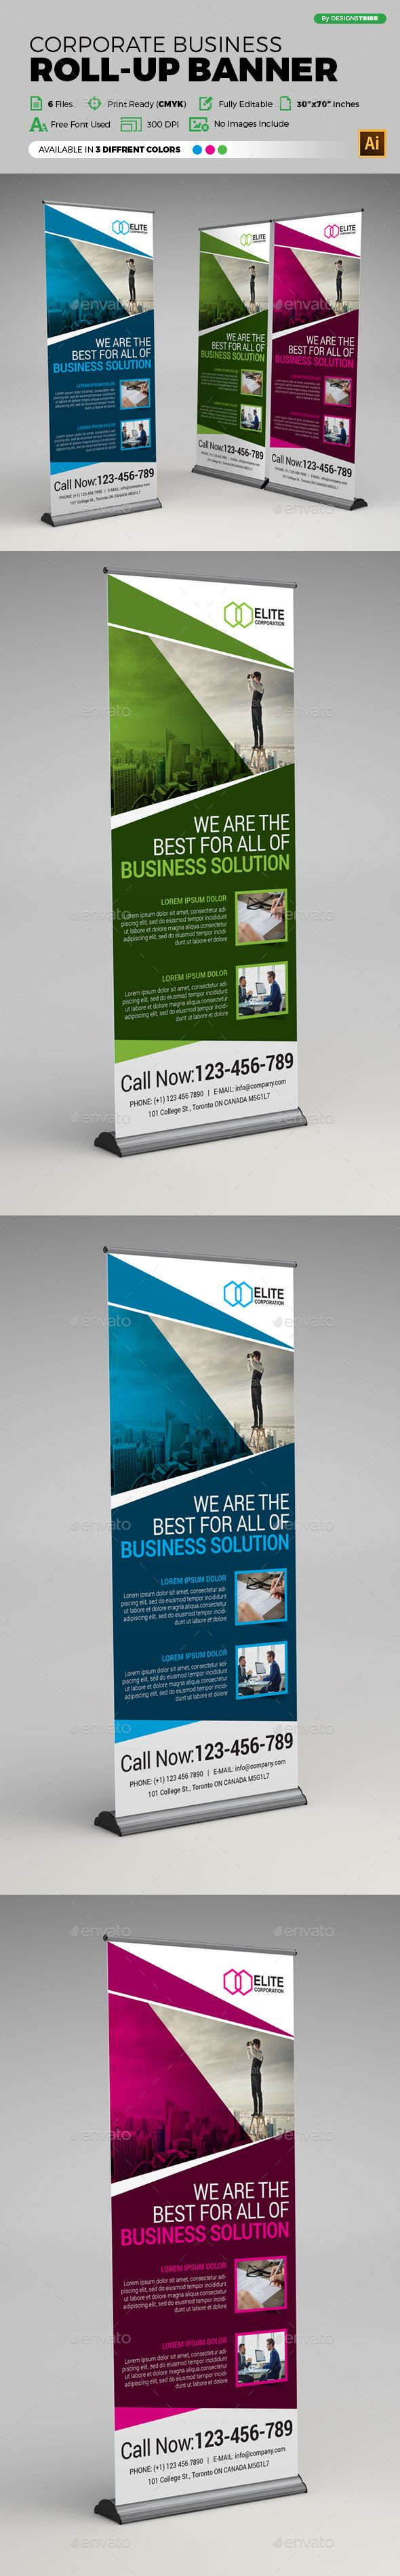 Corporate Business Roll-up Banner Template Vector EPS, AI #design Download: http://graphicriver.net/item/corporate-business-rollup-banner/14279735?ref=ksioks